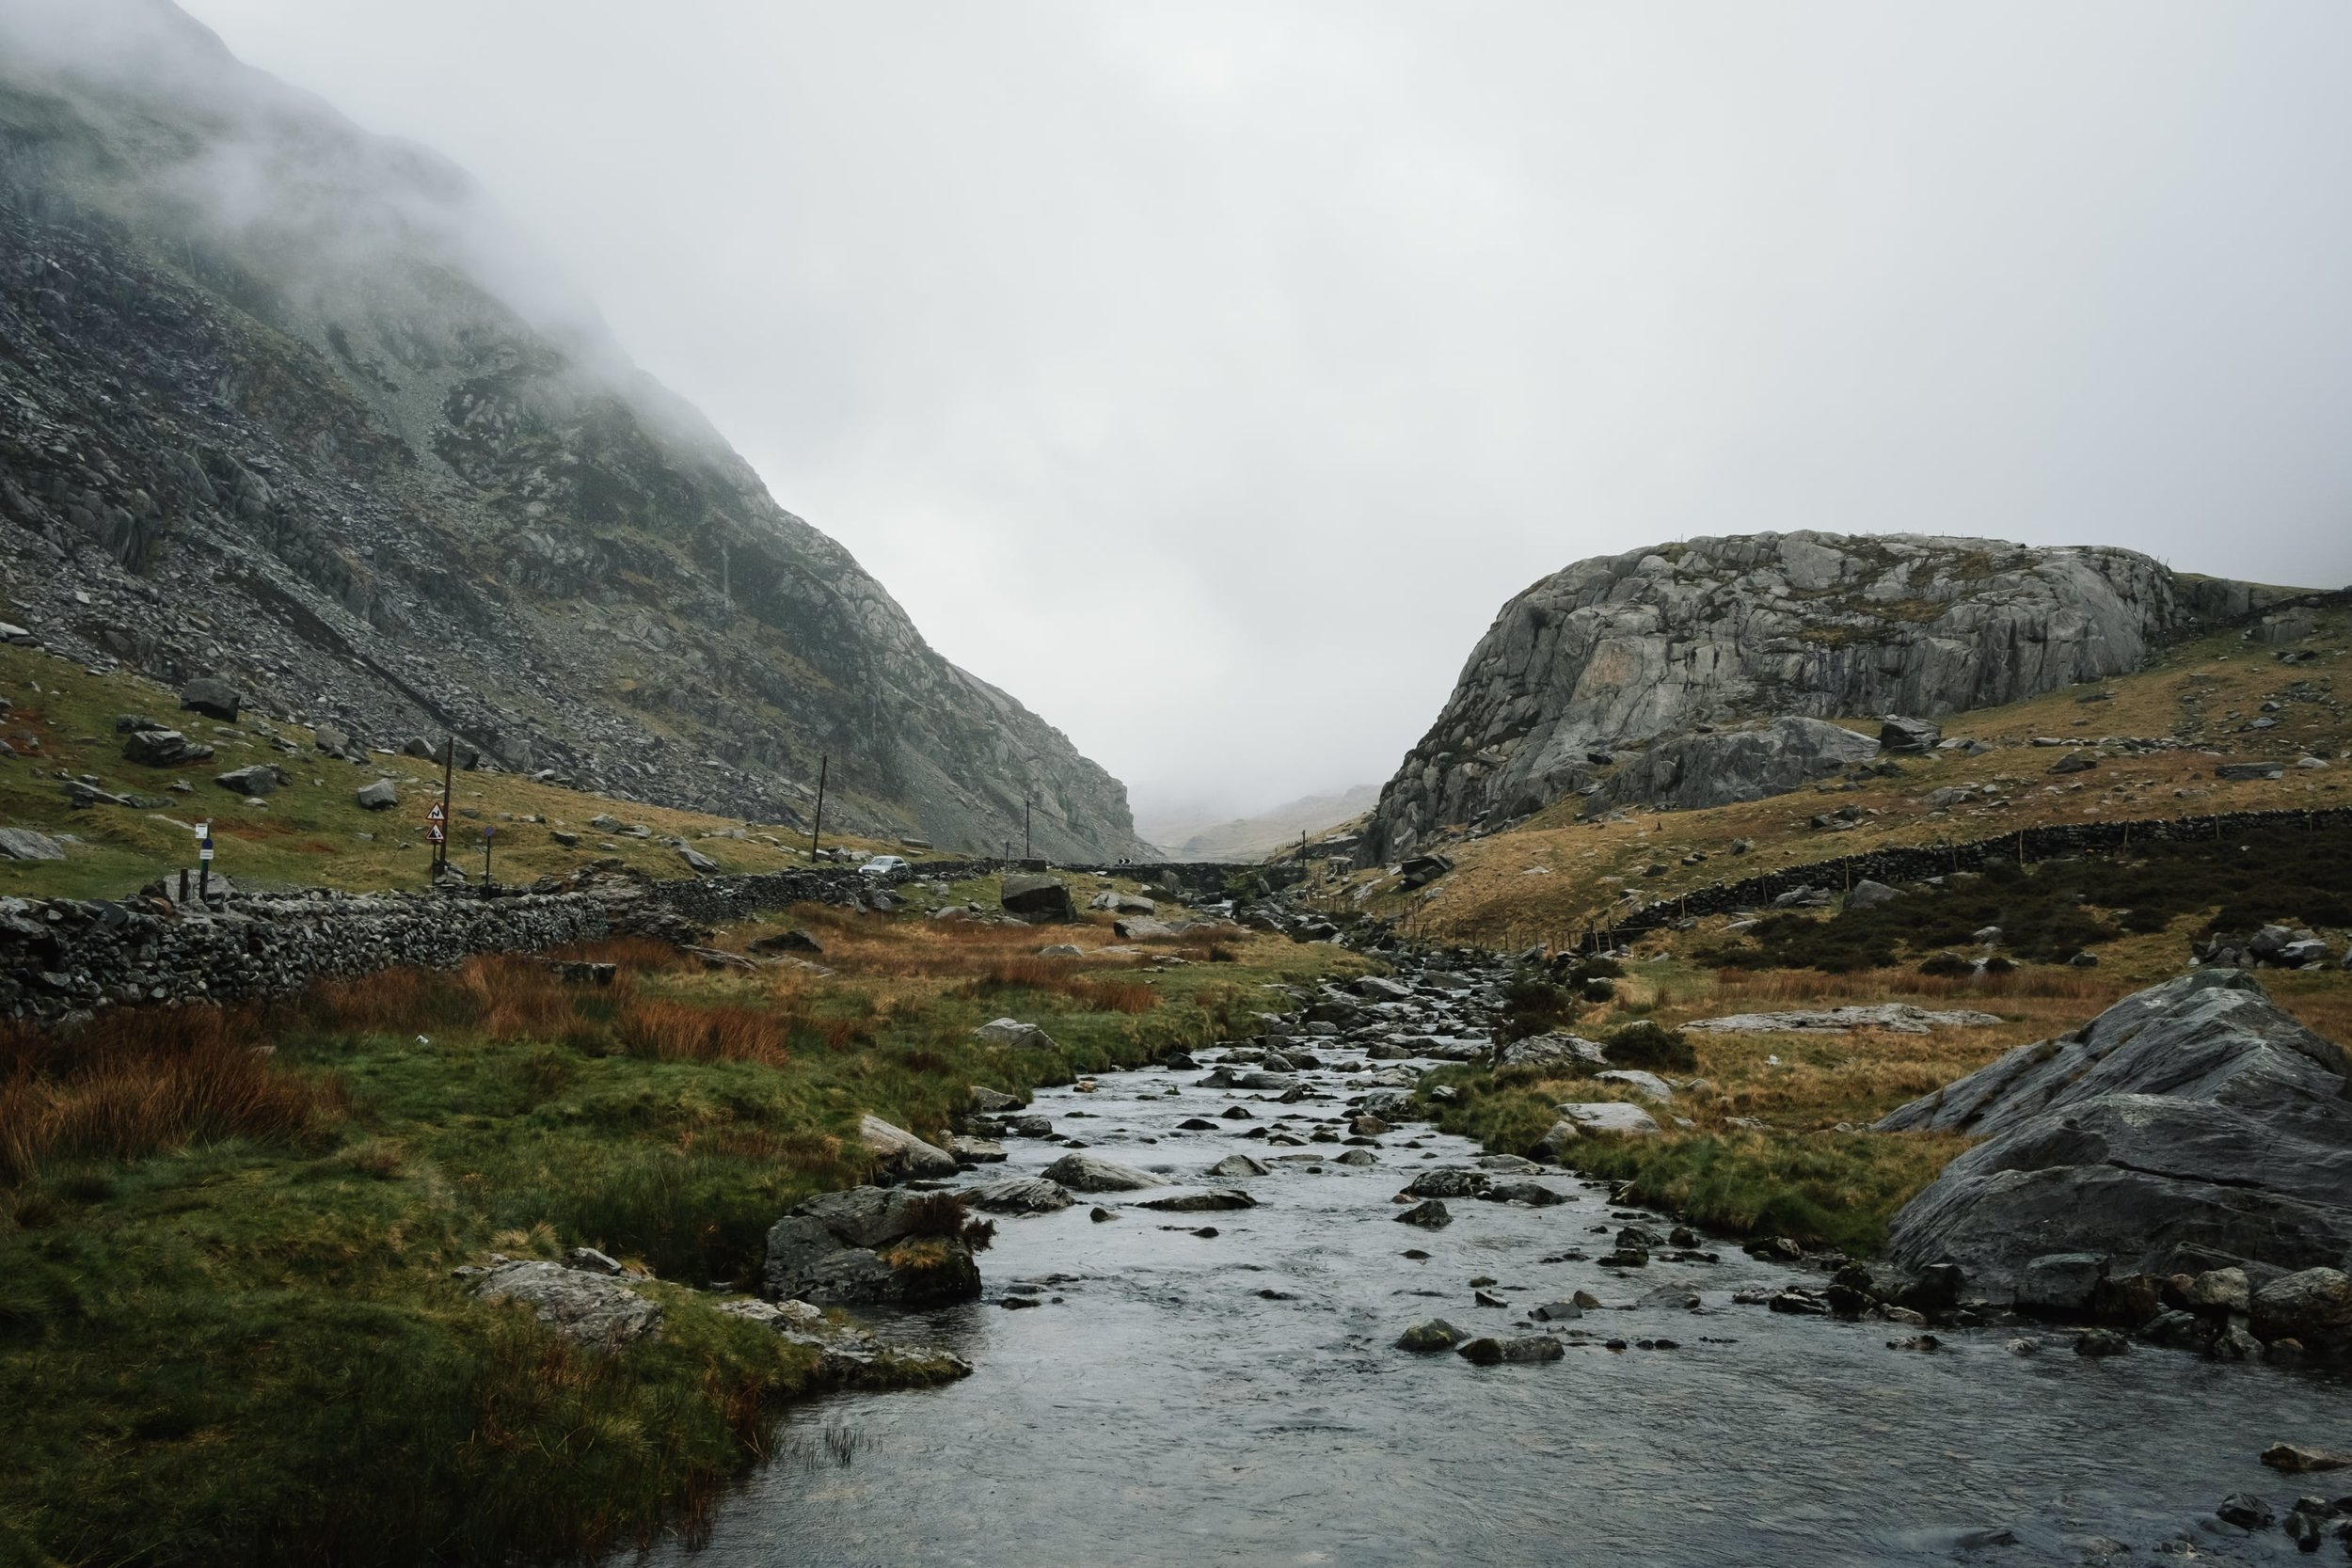 Exploring the epic landscapes of Wales (UK) by Haarkon - Snowdonia National Park